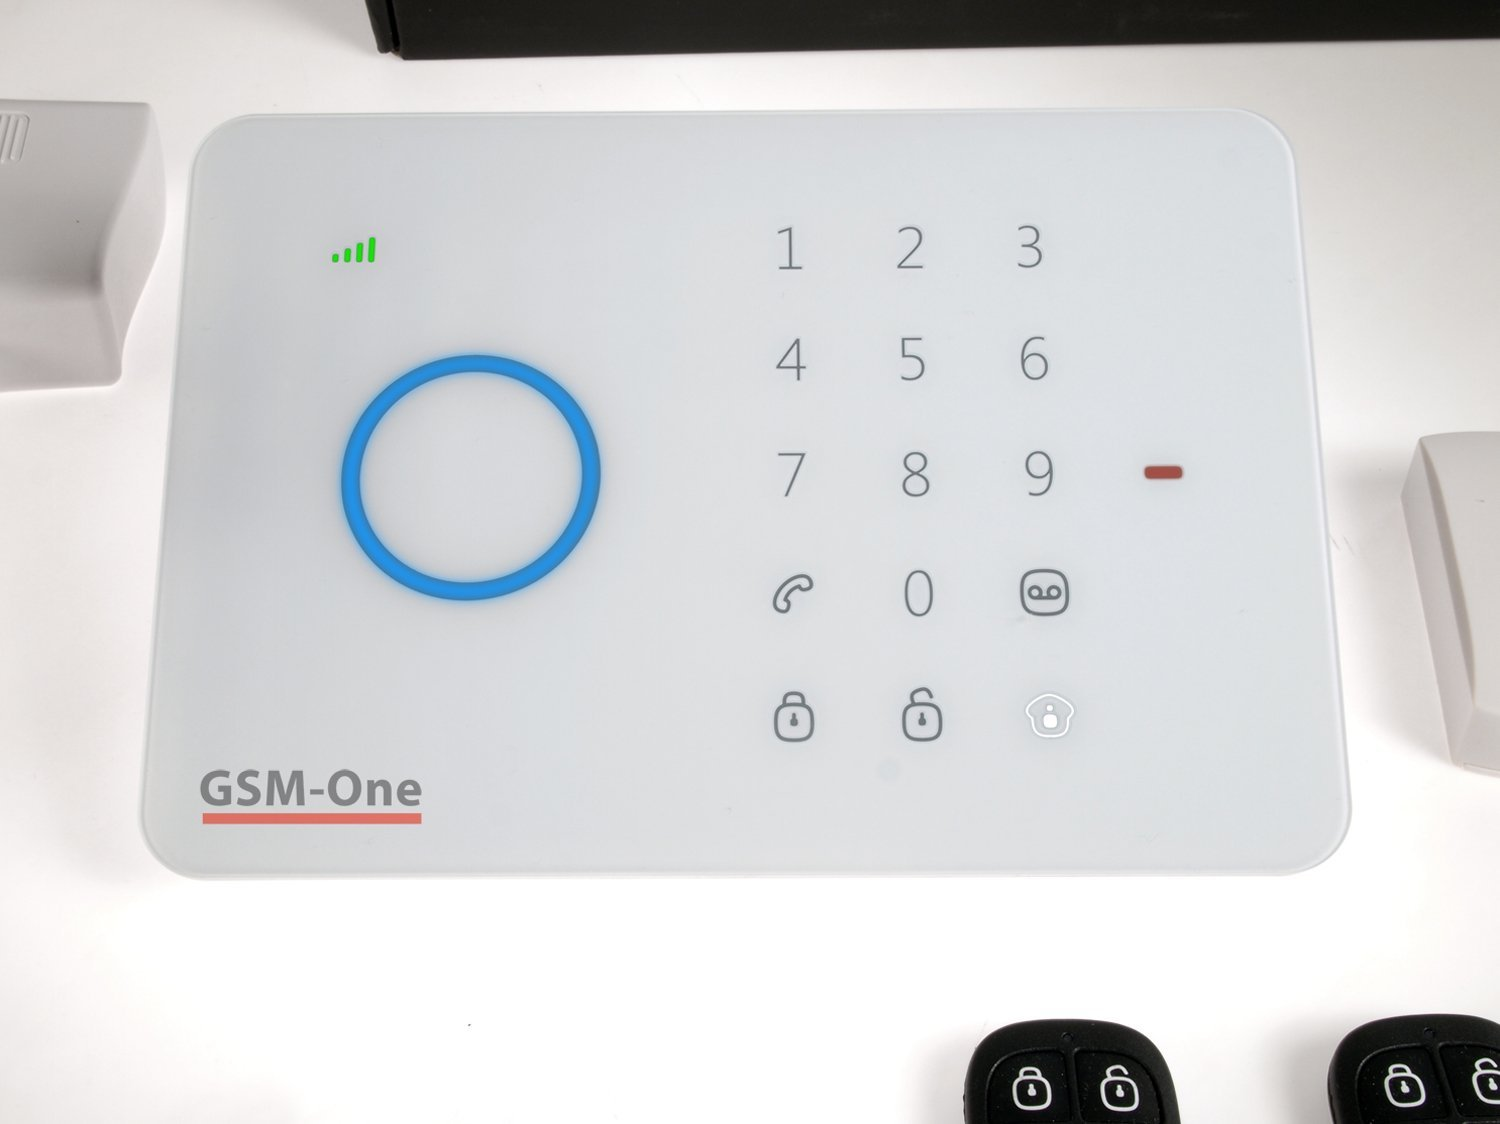 gsm one drh 206 touch im test gsm one alarmanlage drh 206. Black Bedroom Furniture Sets. Home Design Ideas